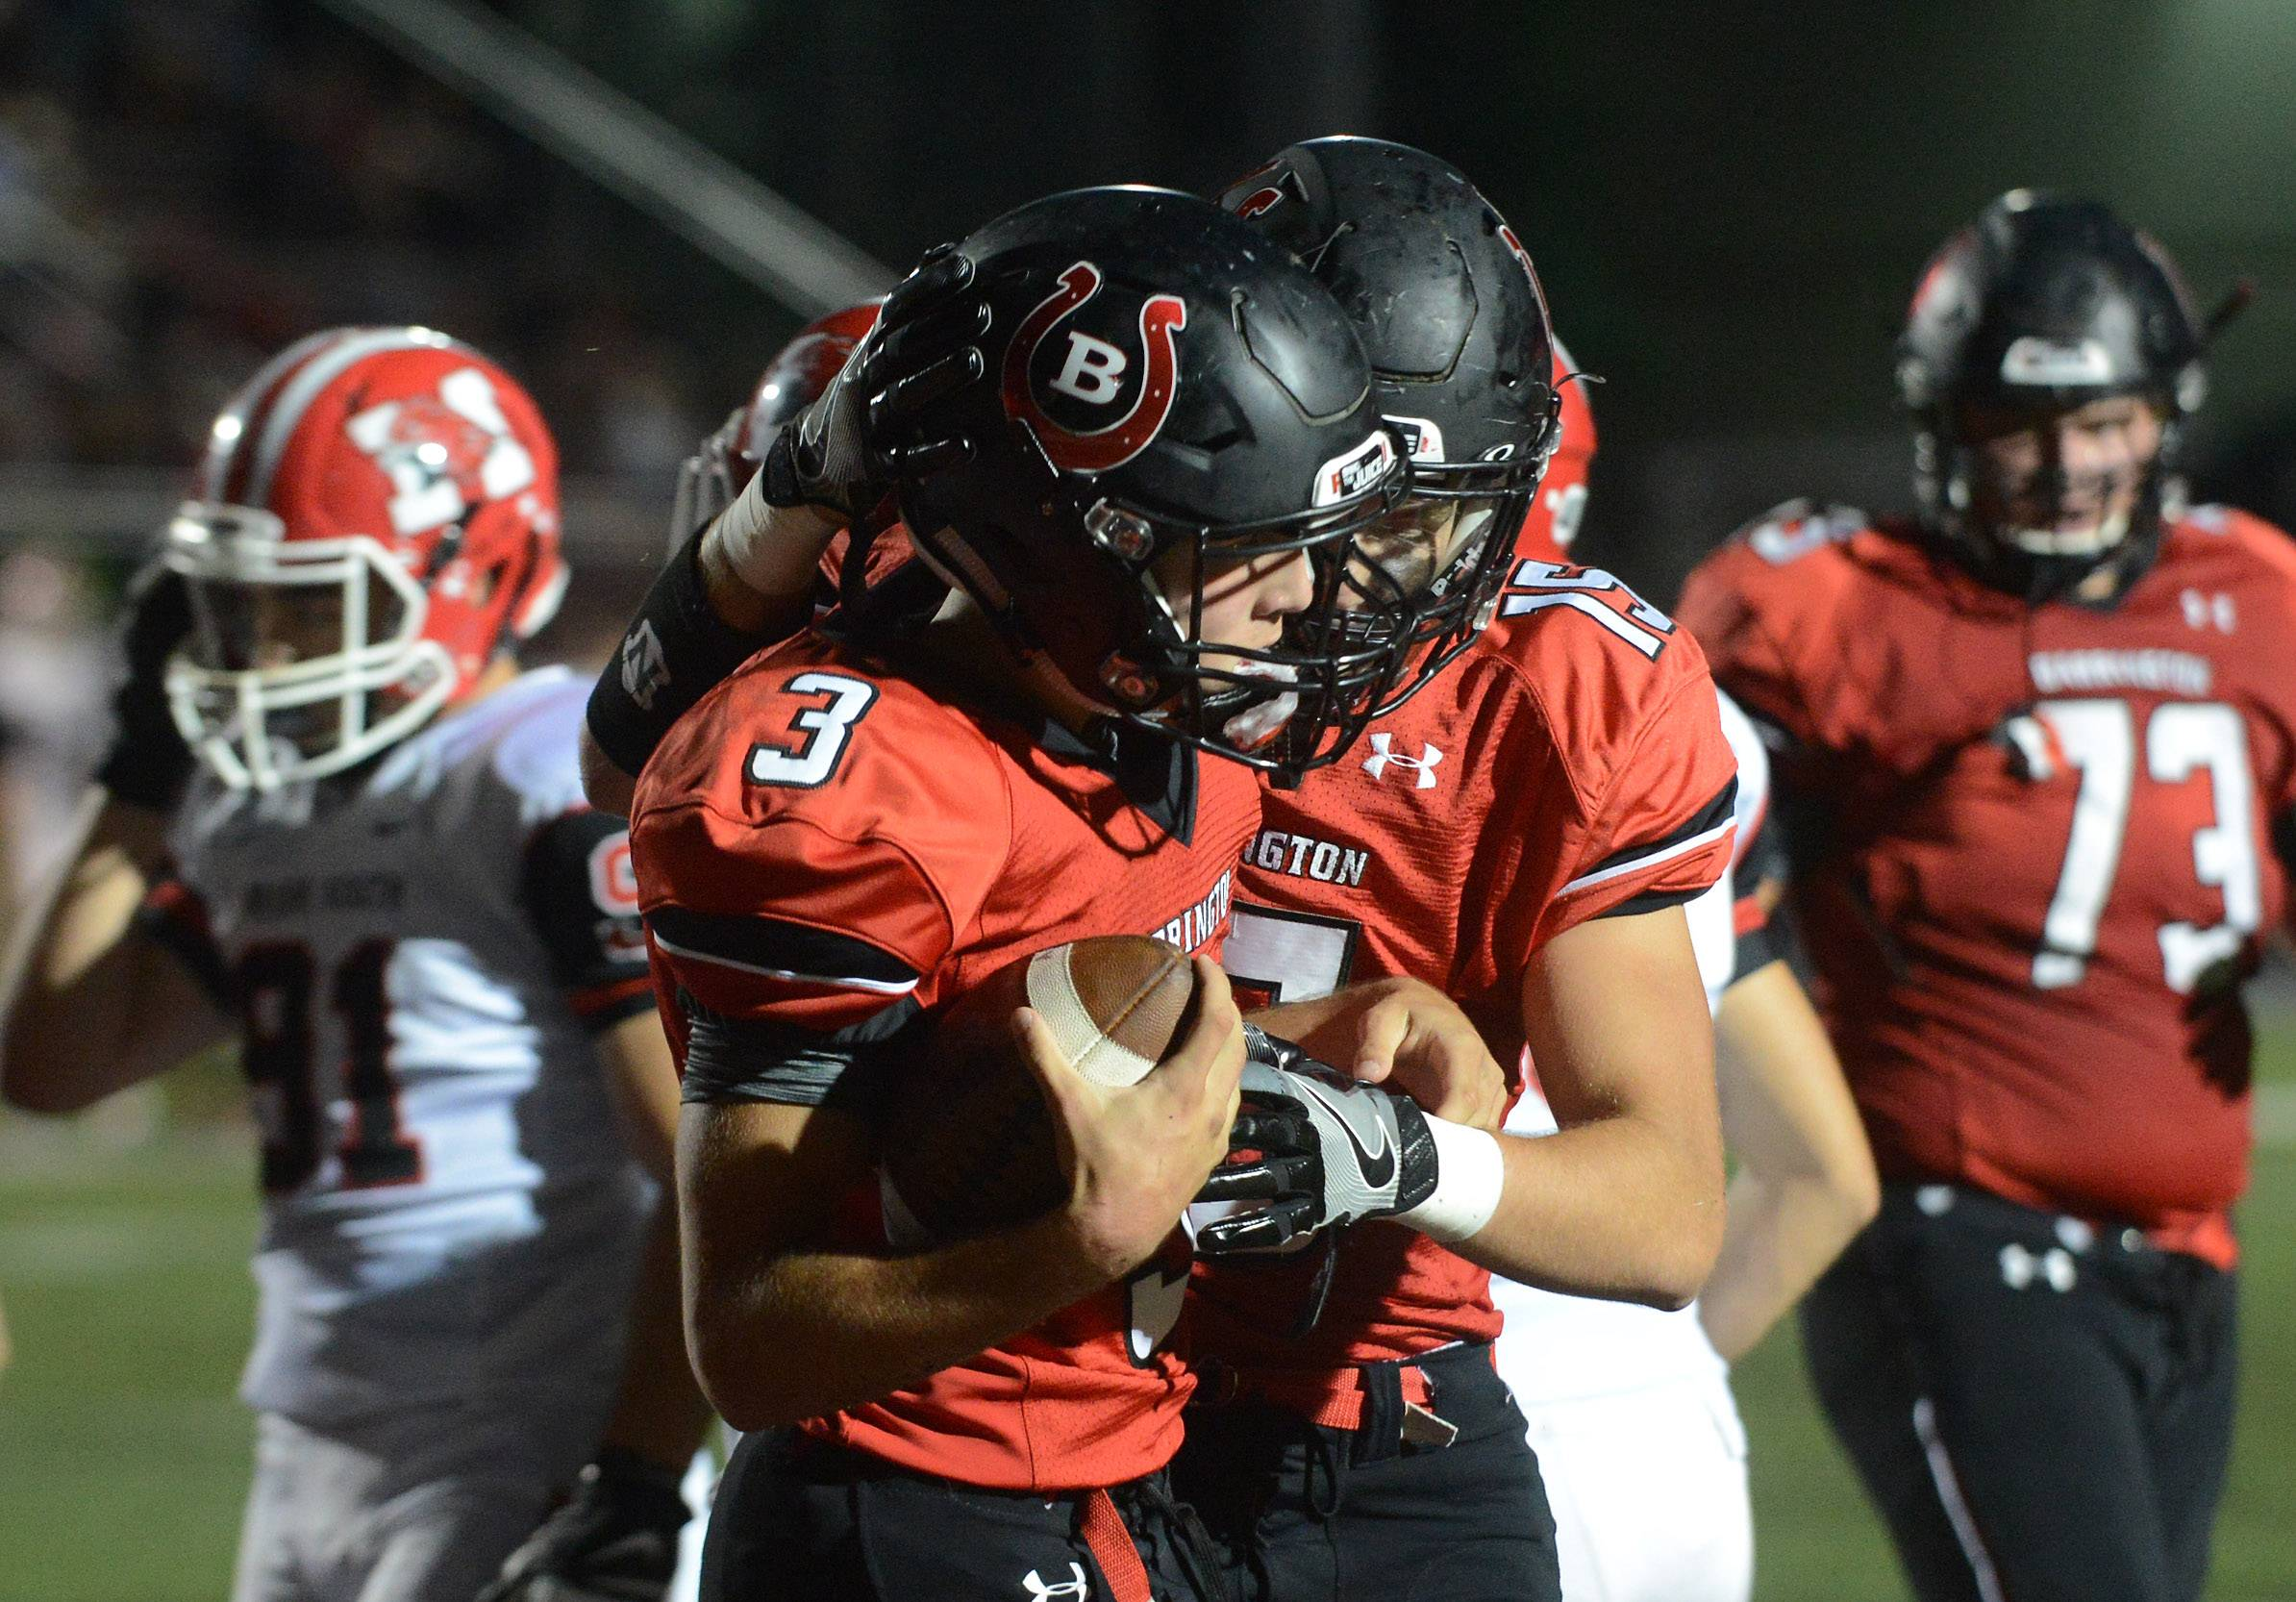 Barrington quarterback Ray Niro (3) celebrates after scoring a first-quarter touchdown against Maine South during Friday's football game at Barrington.